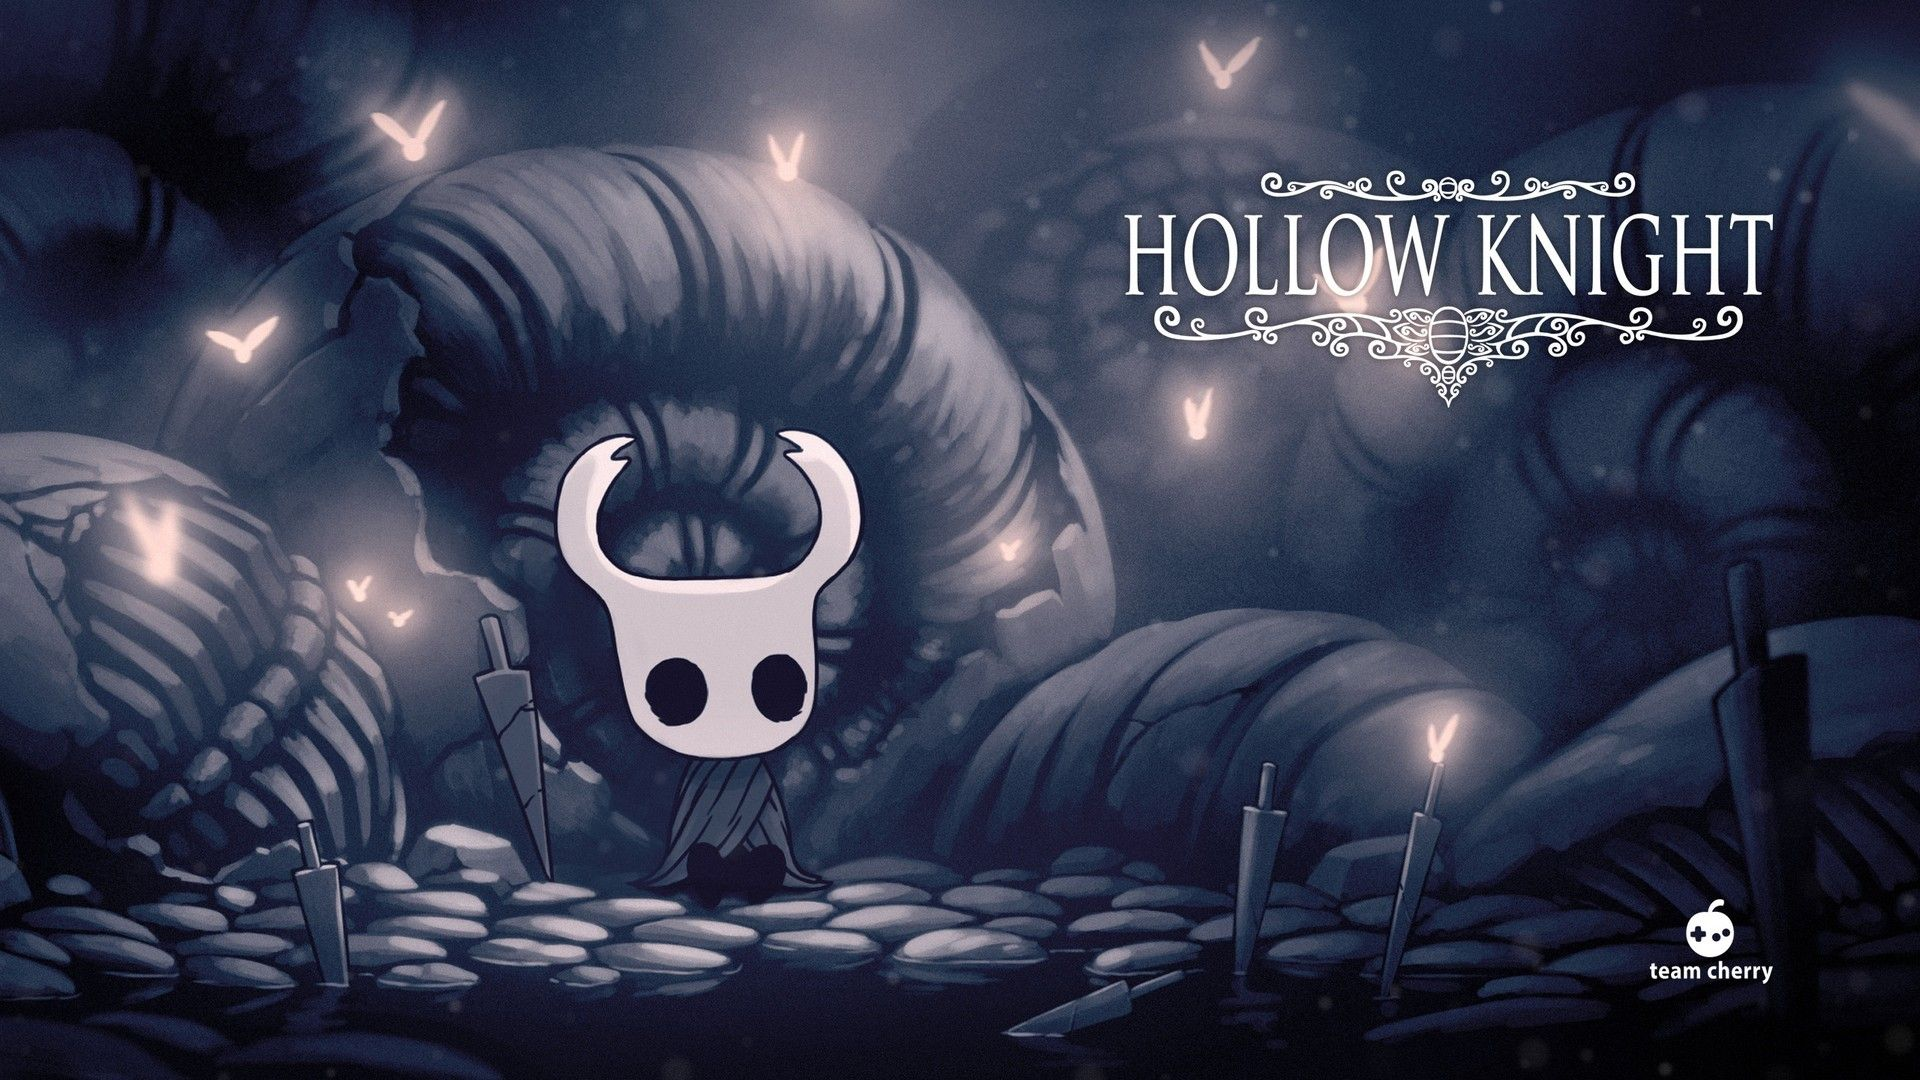 Hollow Knight Desktop Wallpaper Best Wallpaper Hd In 2020 Hd Cute Wallpapers Android Wallpaper Frame By Frame Animation